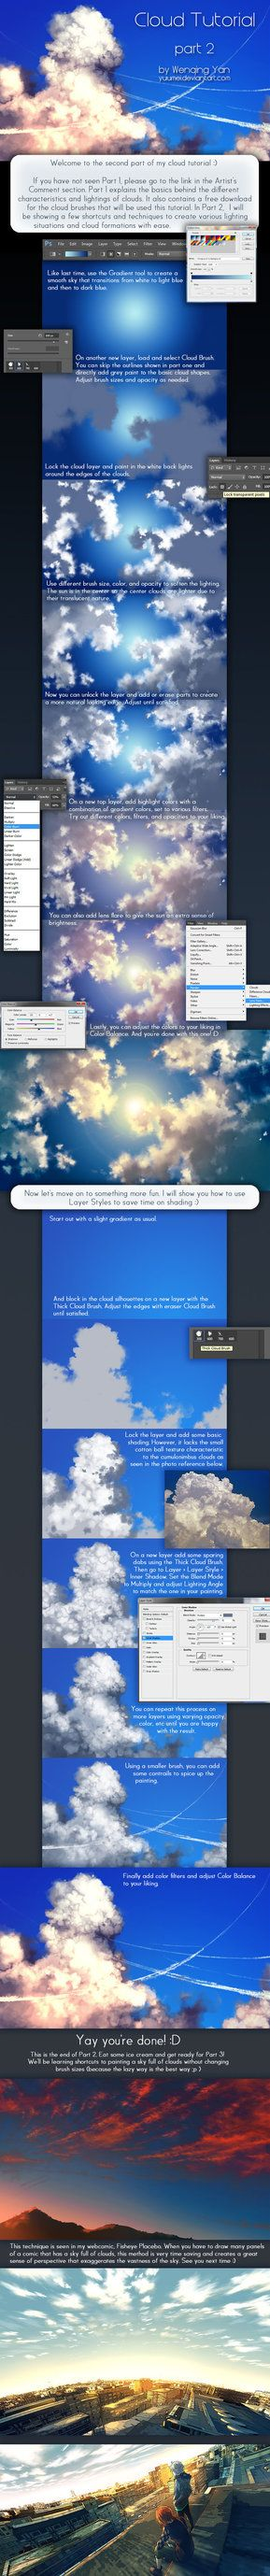 Cloud Tutorial Part 2 by yuumei on deviantART Click the link, In the author's description will be a ink to free abr file or if you want to all fair there is a purchase button on the right side. Only 100 dA points (80-1$)